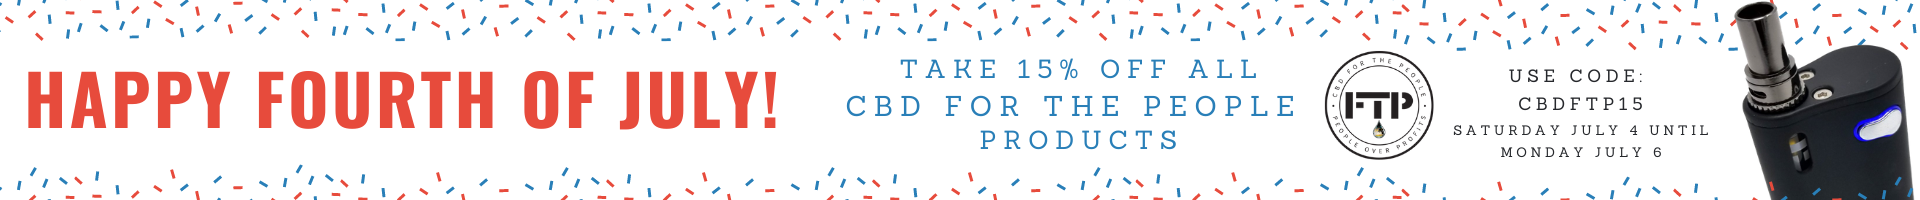 CBD For The People on CBDResellers Celebrating Independence Day with a Sale!